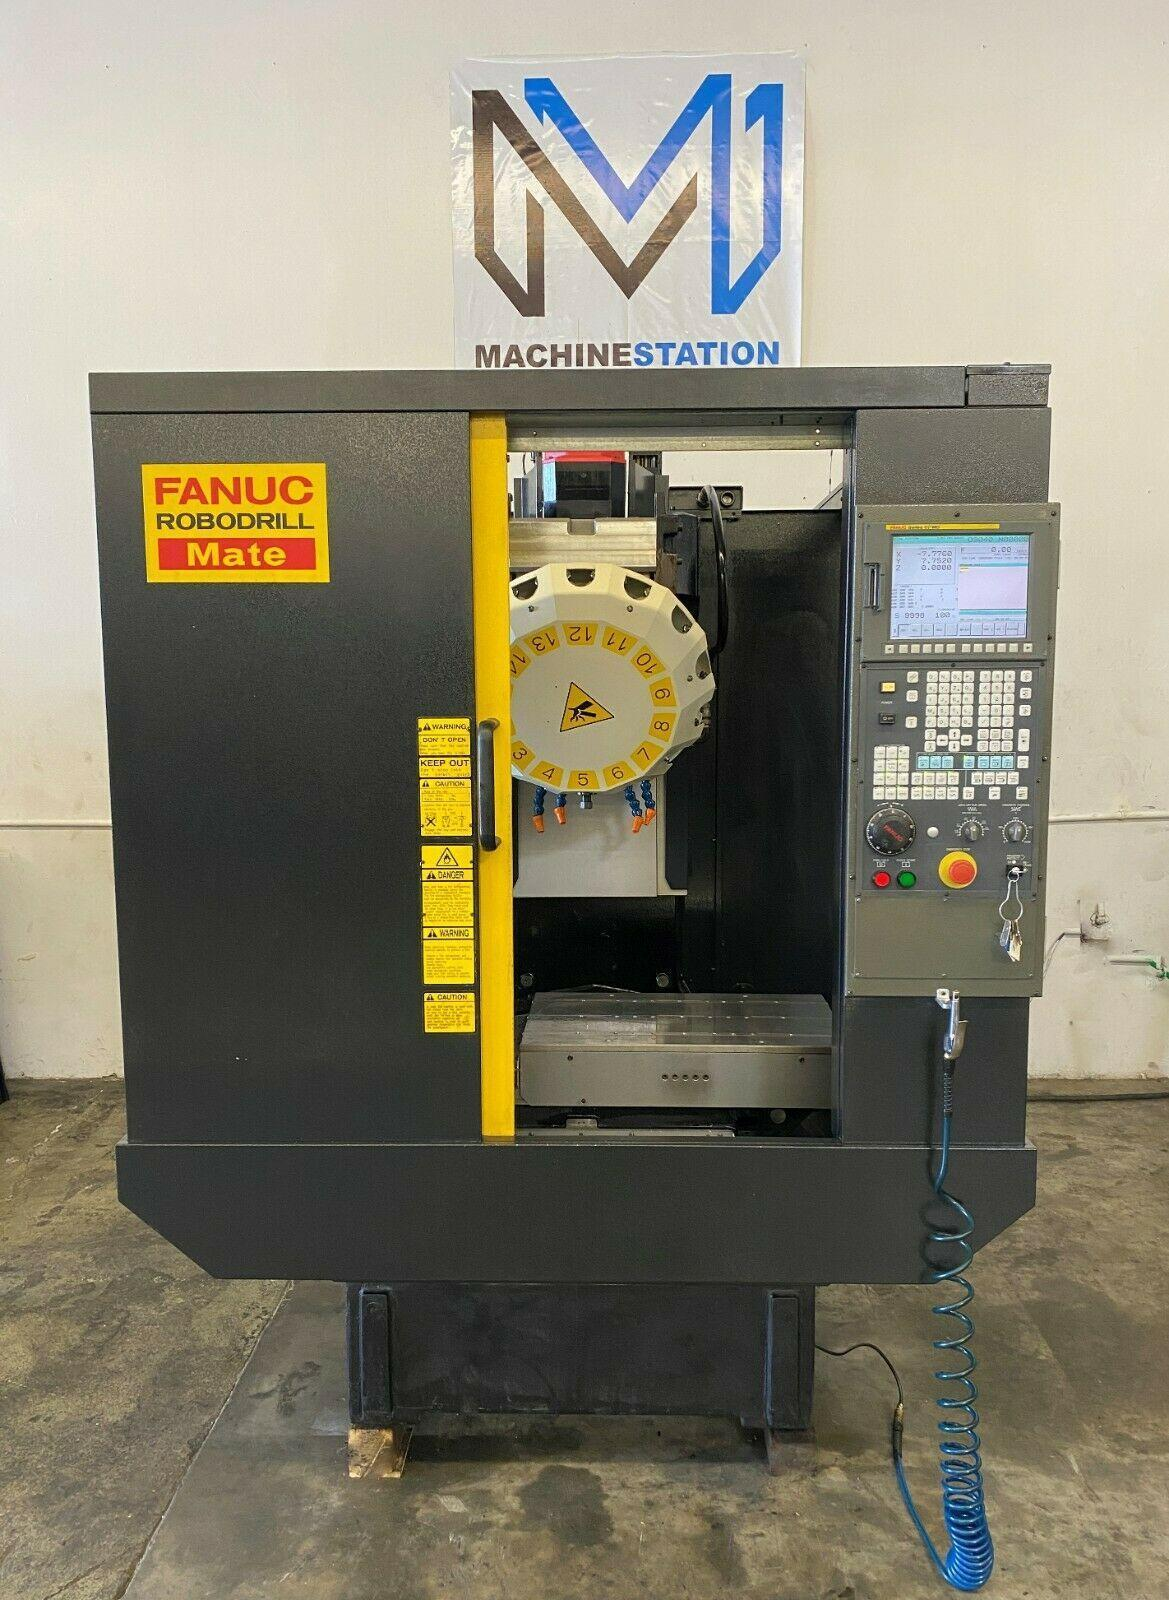 FANUC ROBODRILL MATE CNC DRILL TAP VERTICAL MACHINING CENTER